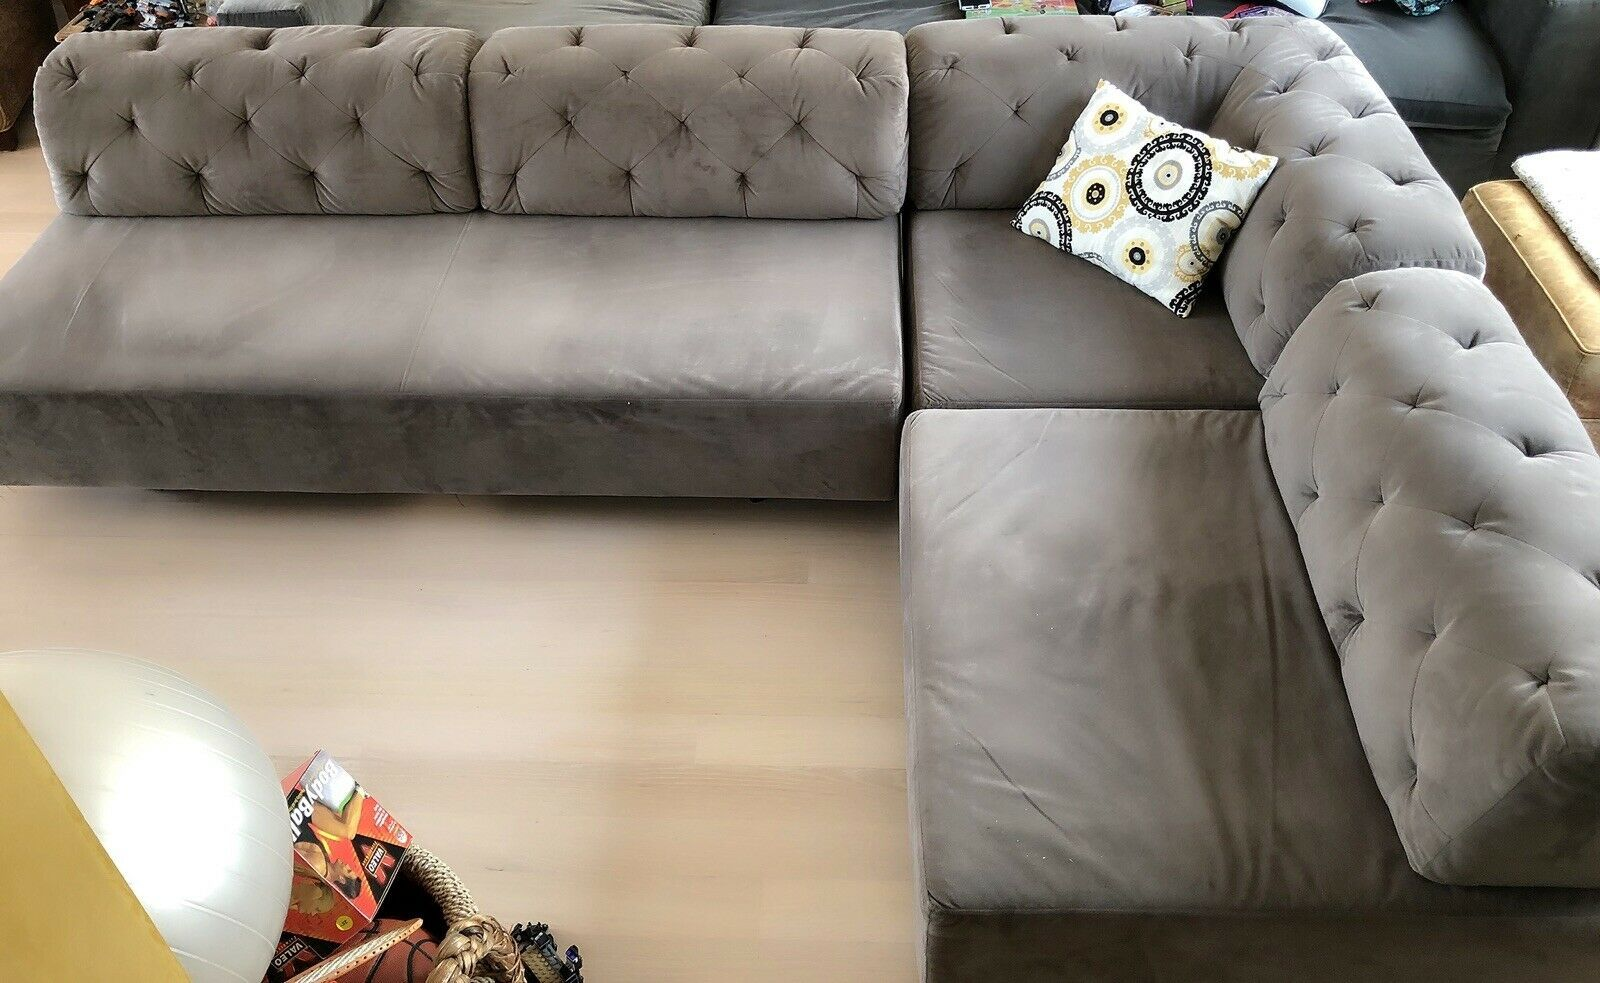 Beautiful And Rarely Used Microfiber West Elm Sectional Couch Grey Color Microfiber Couch Ideas Of Micro Microfiber Sectional Couch Couch Microfiber Couch